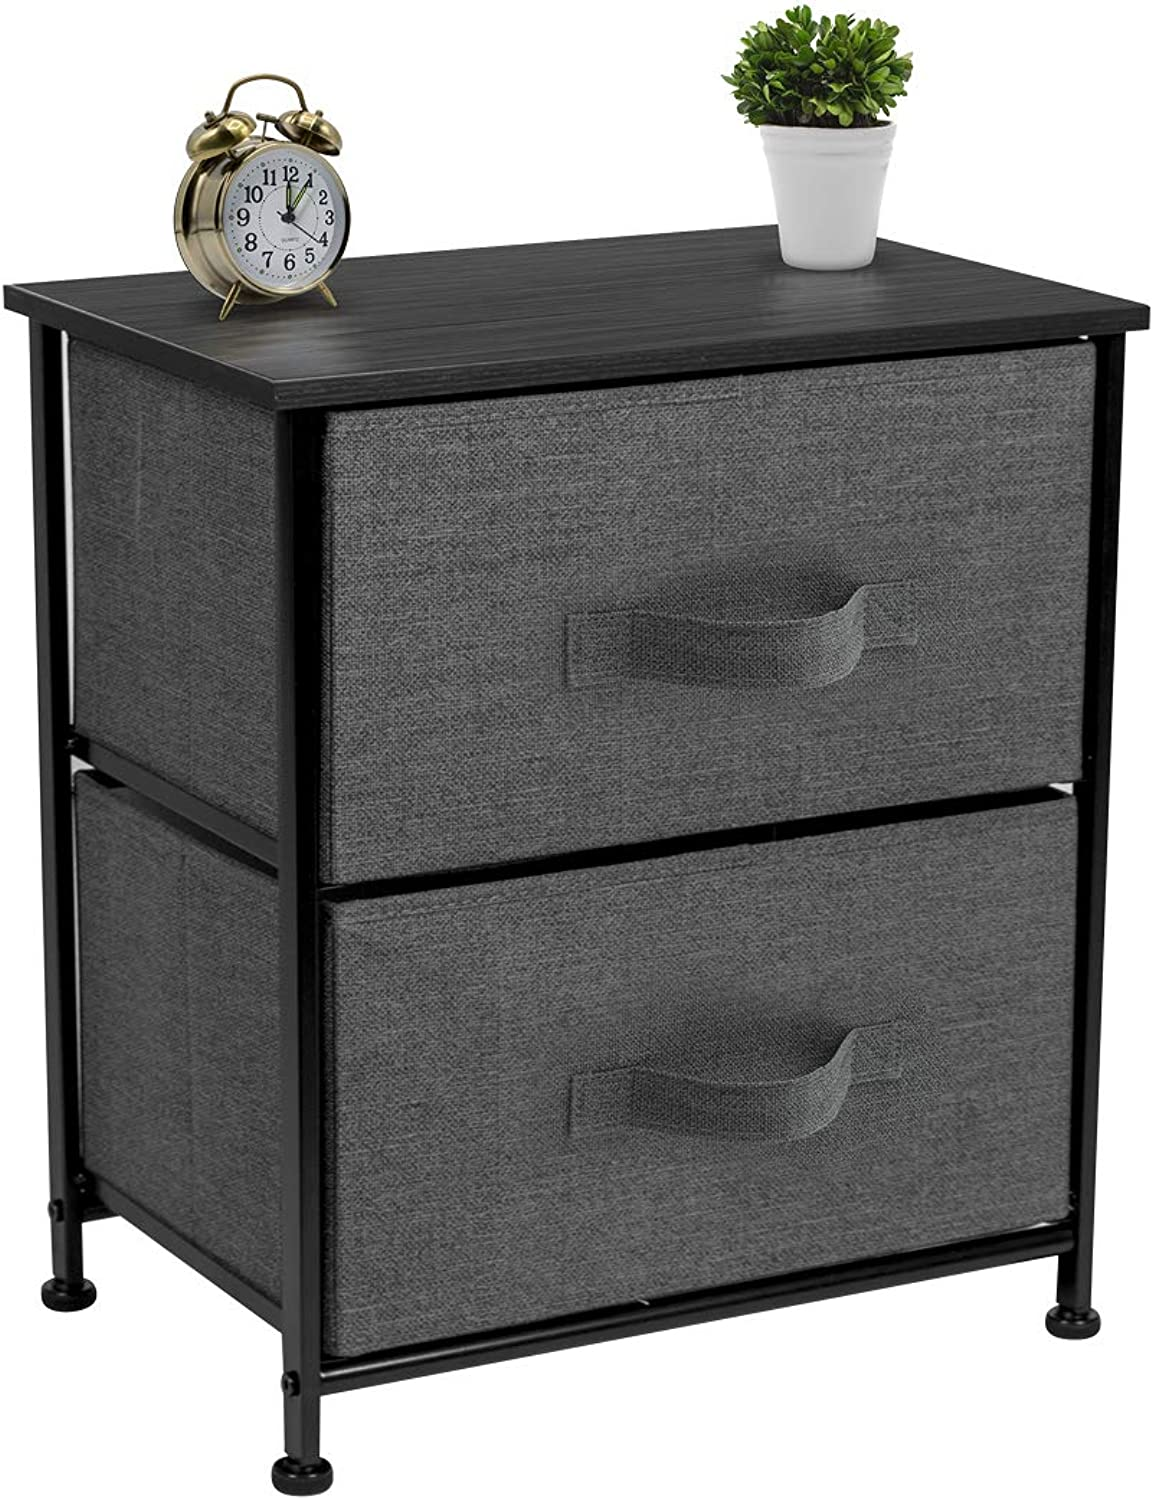 Sorbus Nightstand with 2 Drawers - Bedside Furniture & Accent End Table Chest for Home, Bedroom Accessories, Office, College Dorm, Steel Frame, Wood Top, Easy Pull FabricBins (2-Drawer, Black)